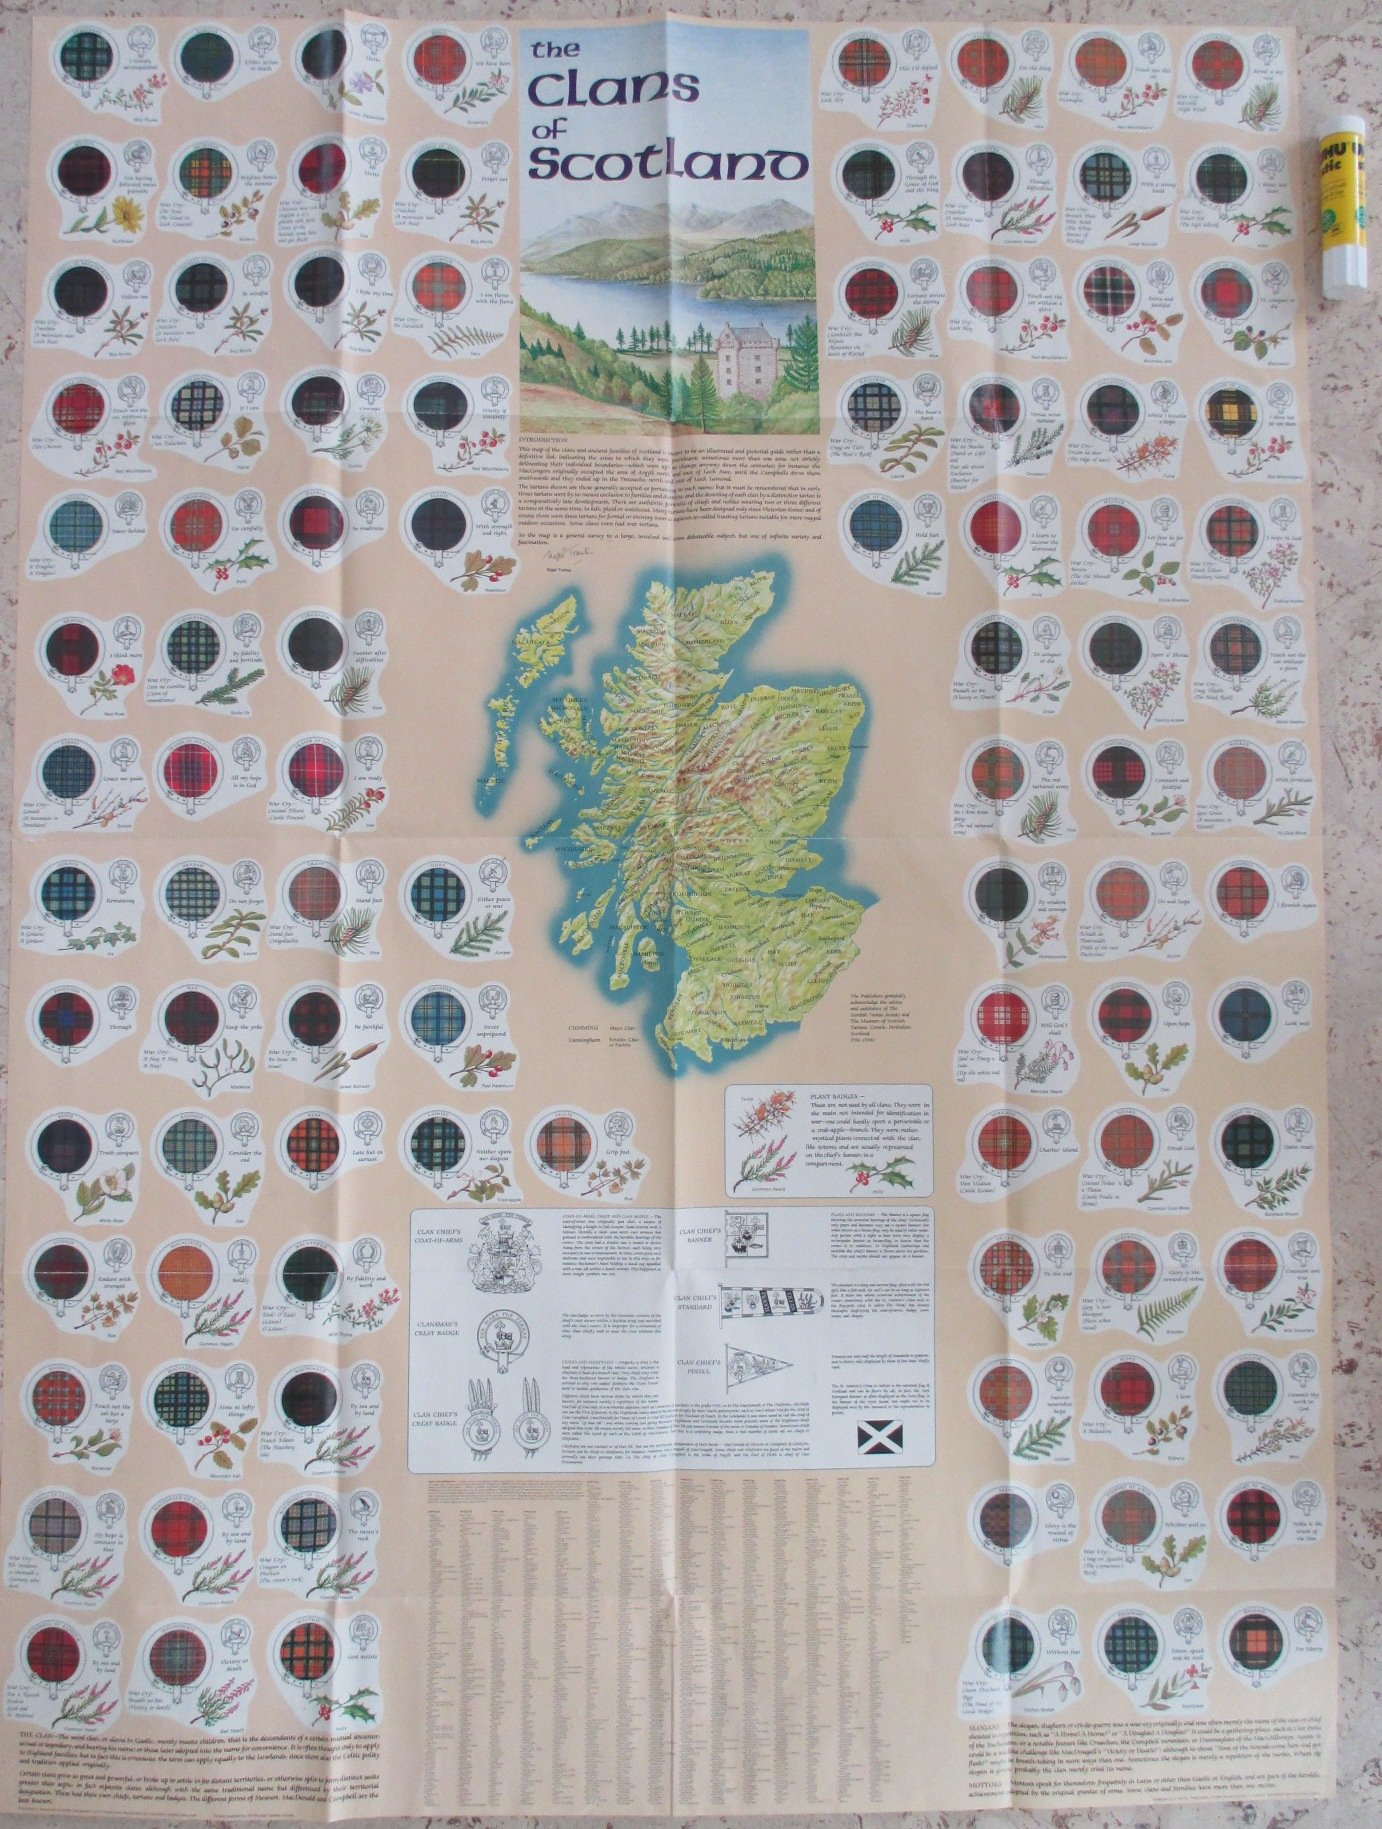 The clans of Scotland: A full colour pictorial map depicting